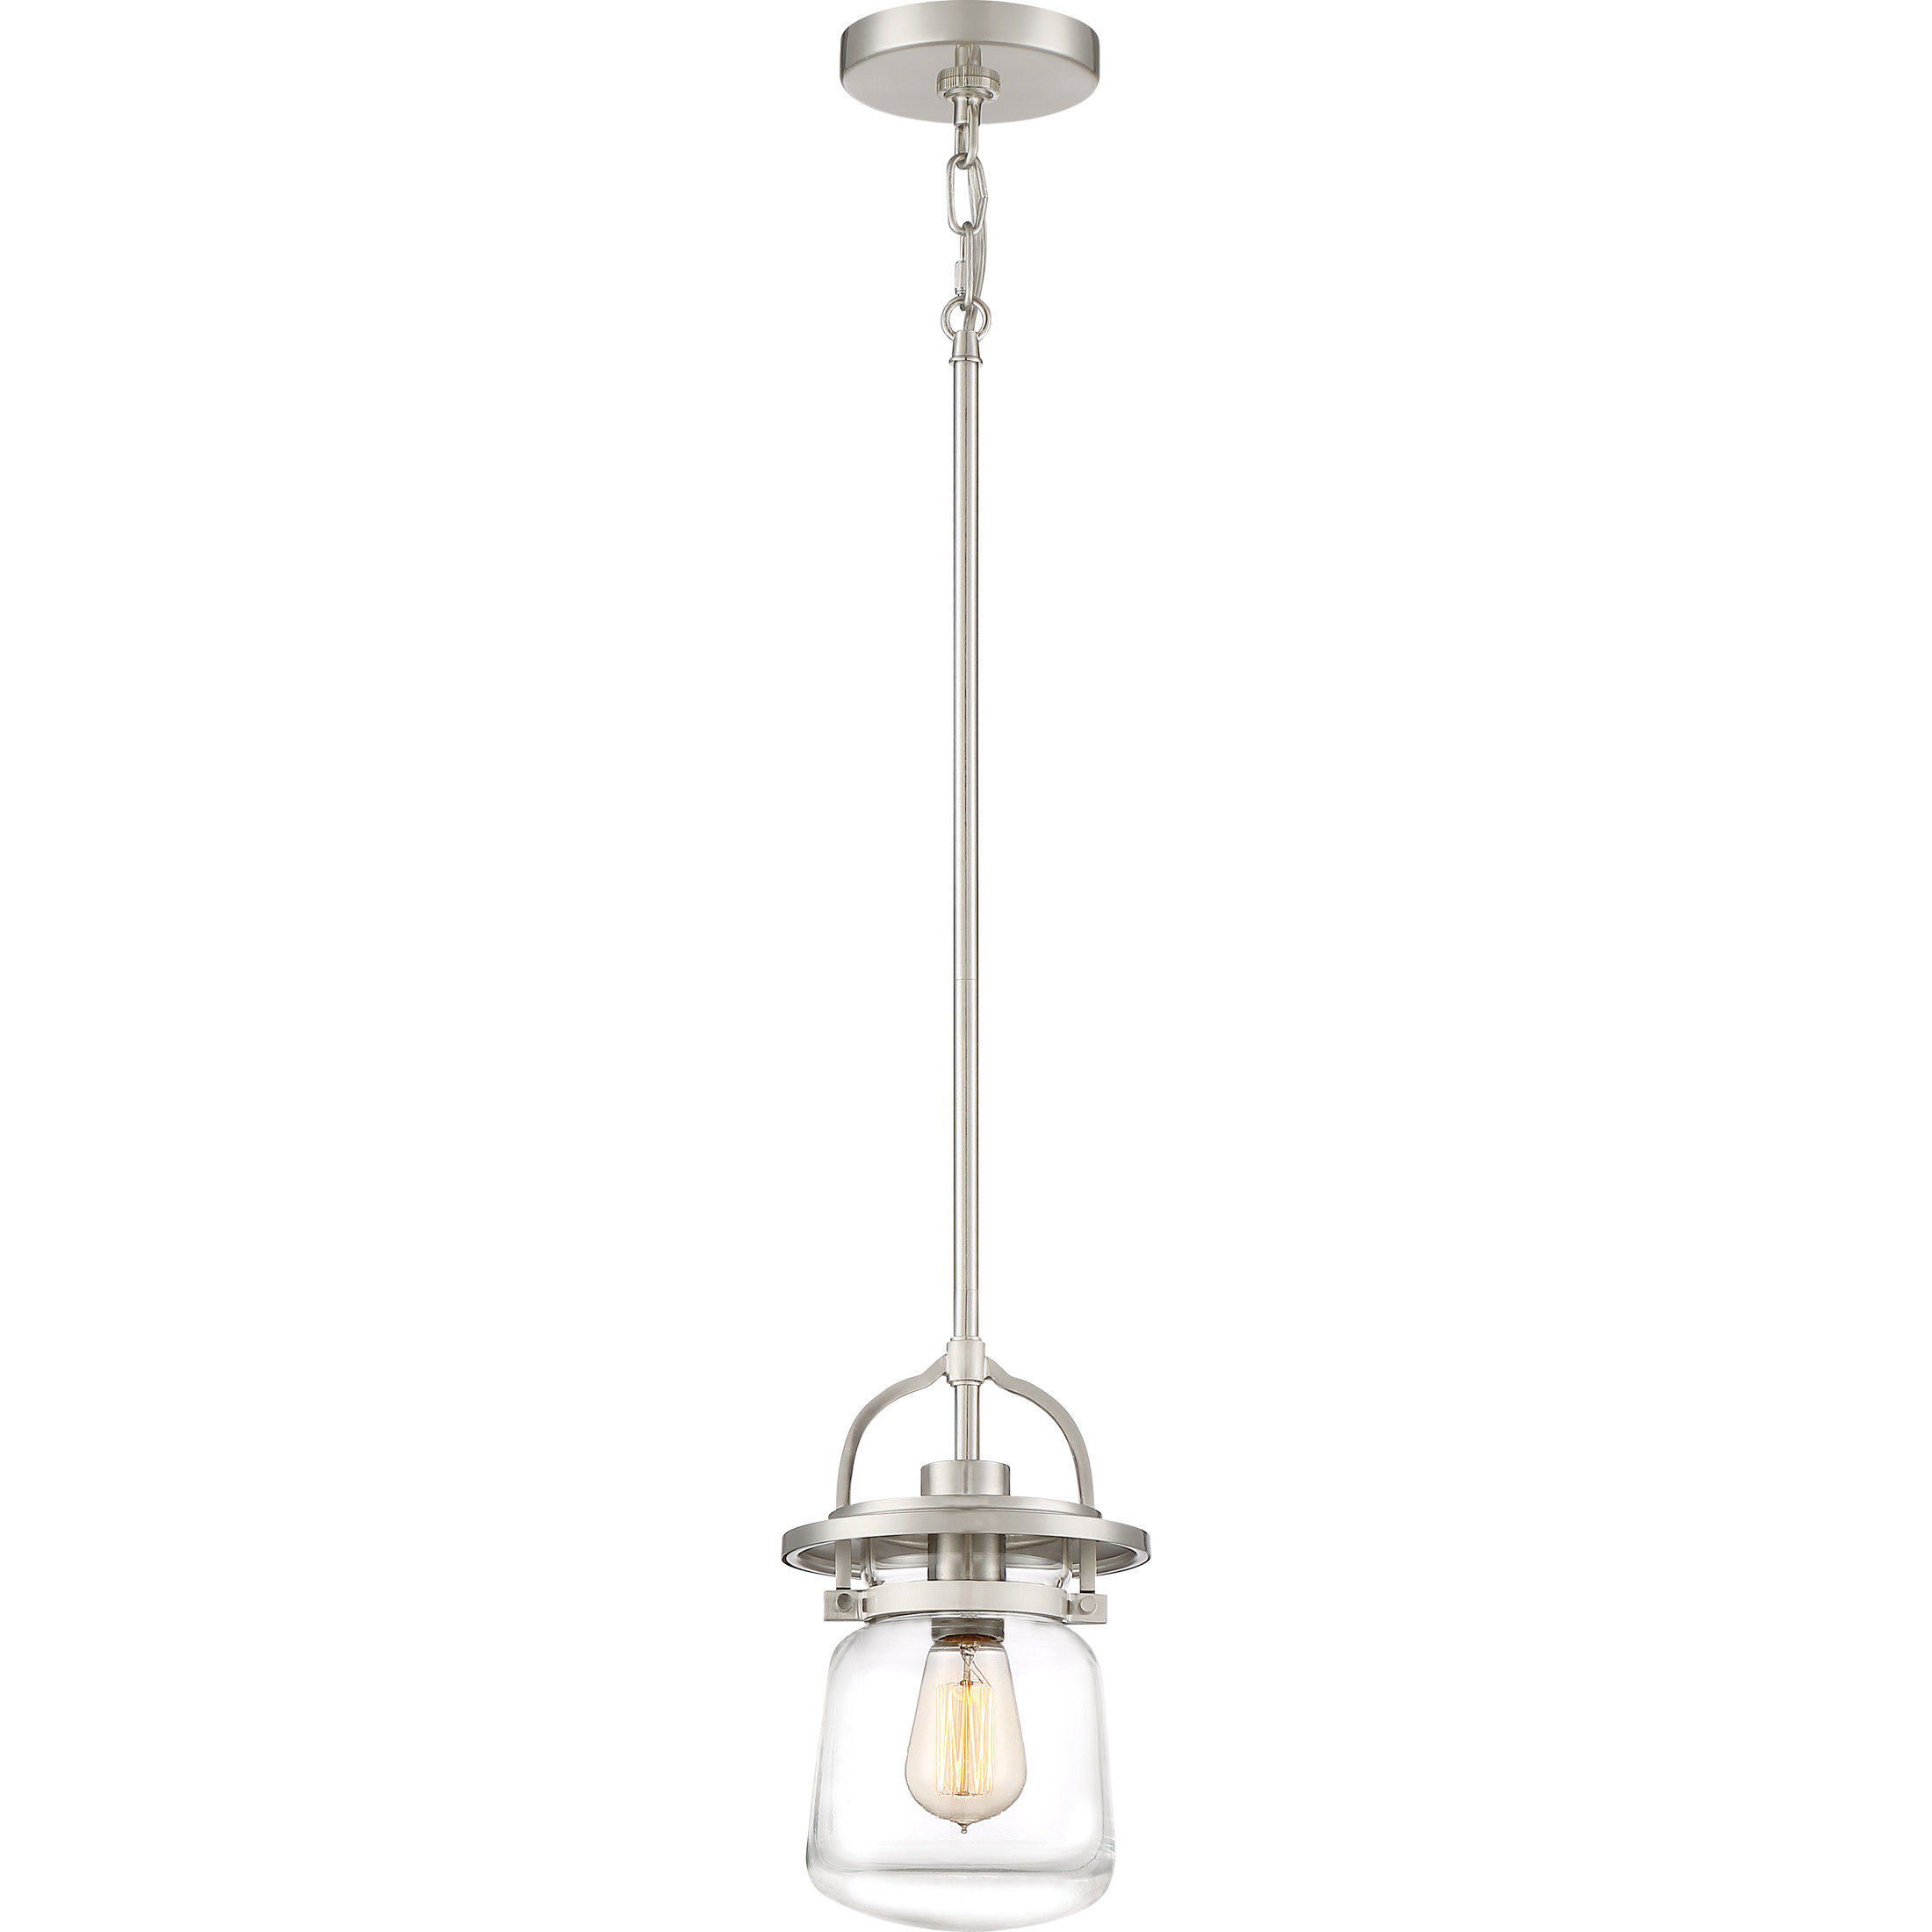 Dickerson 1 Light Single Jar Pendant With Sussex 1 Light Single Geometric Pendants (View 9 of 30)